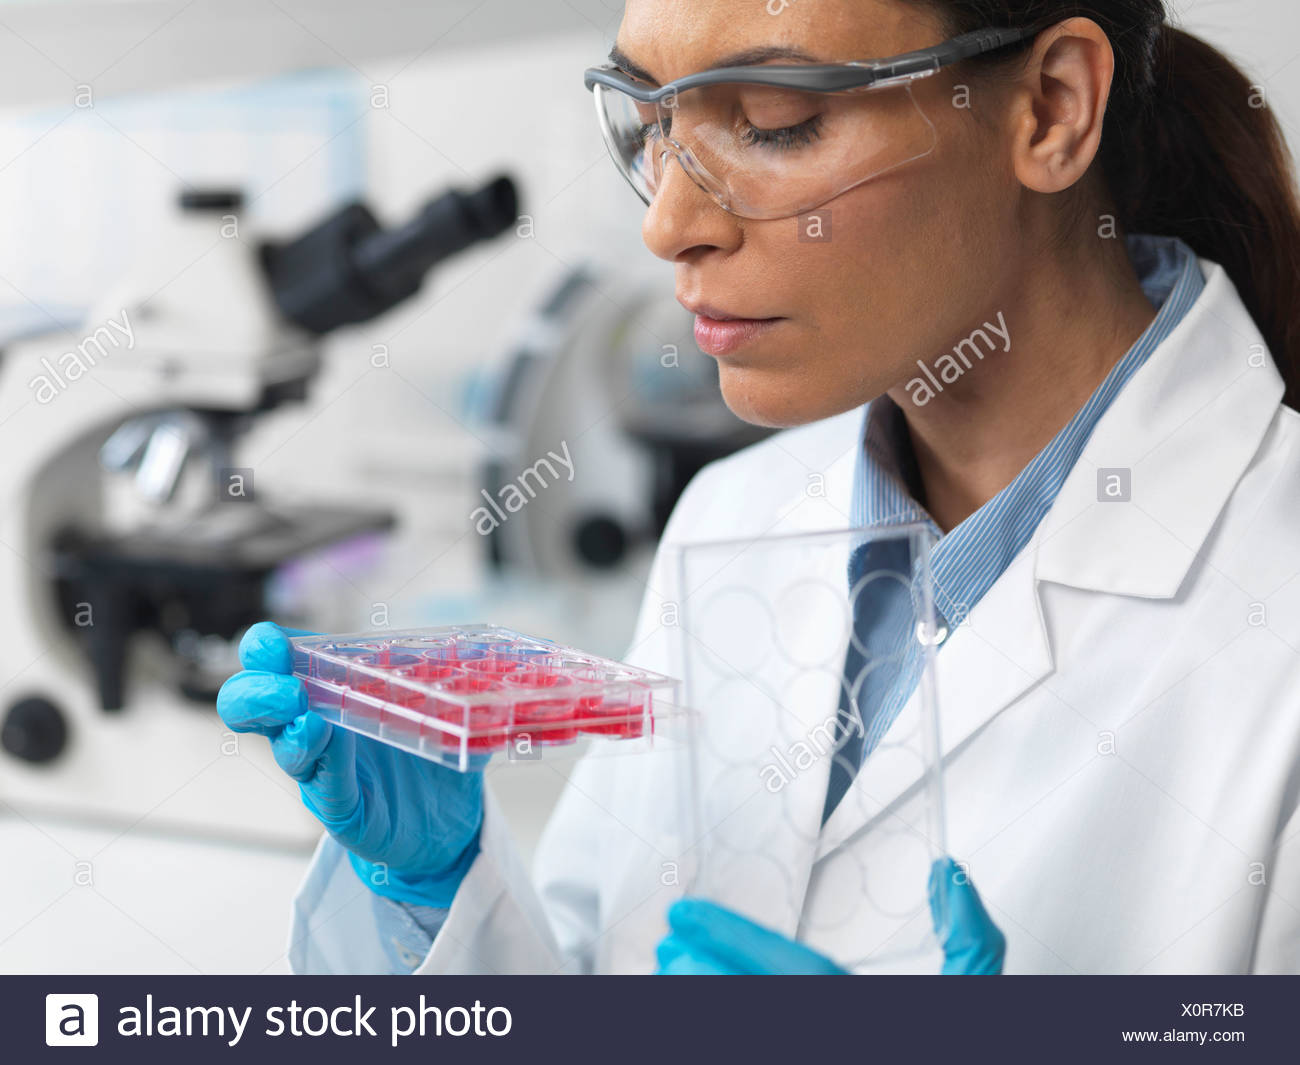 Stem cell research. Female scientist examining cell cultures in multiwell tray - Stock Image